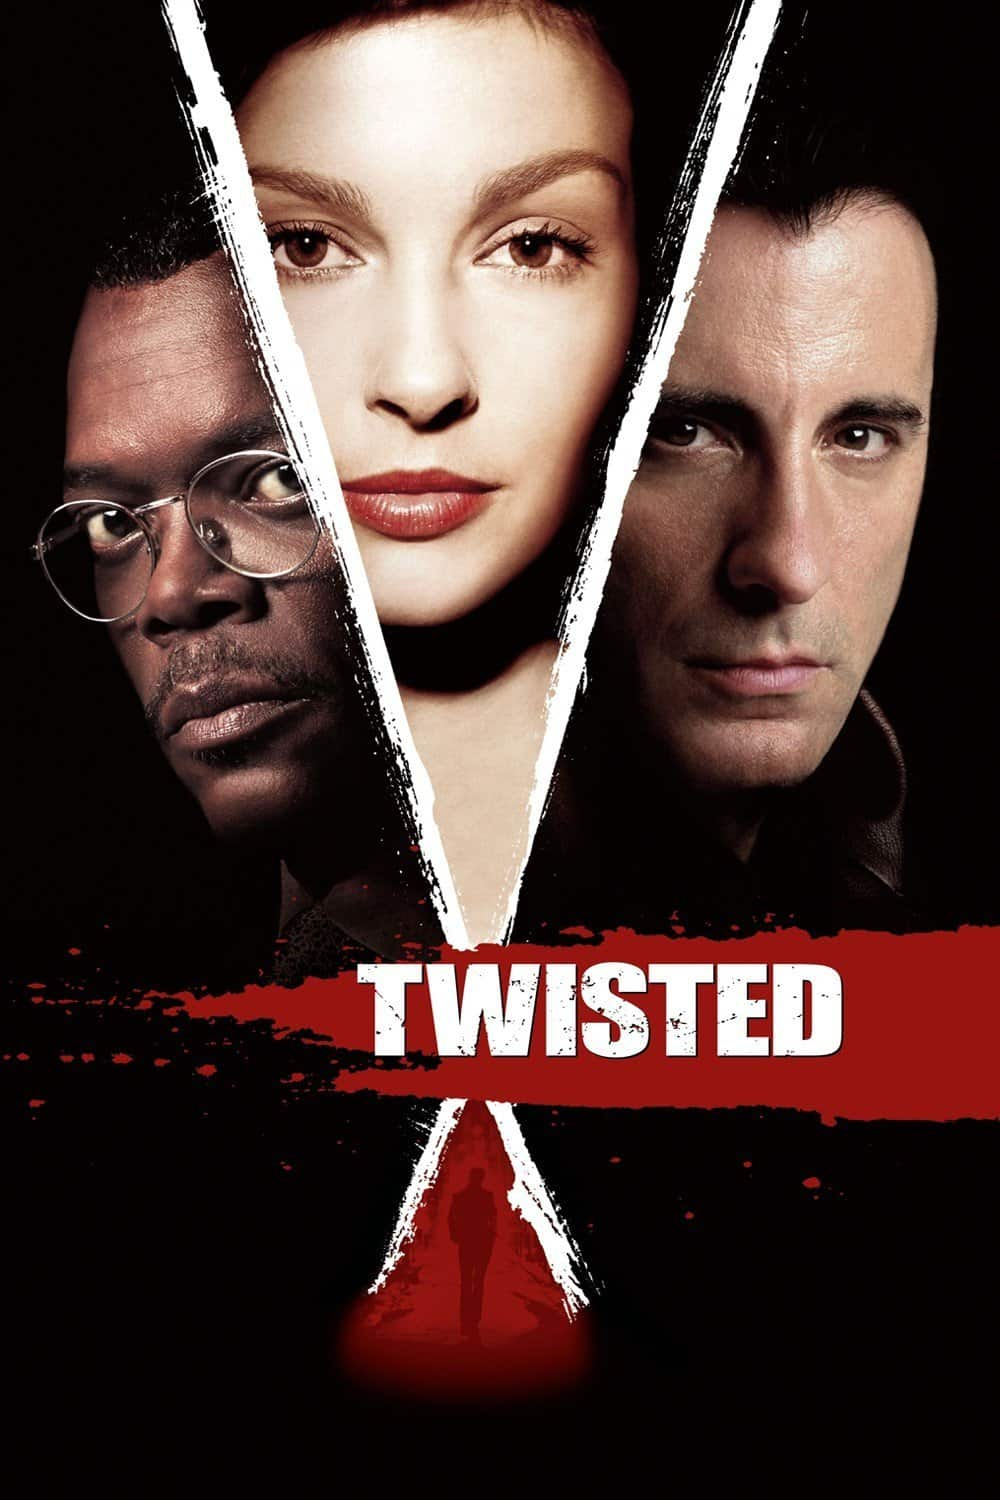 Twisted, 2004